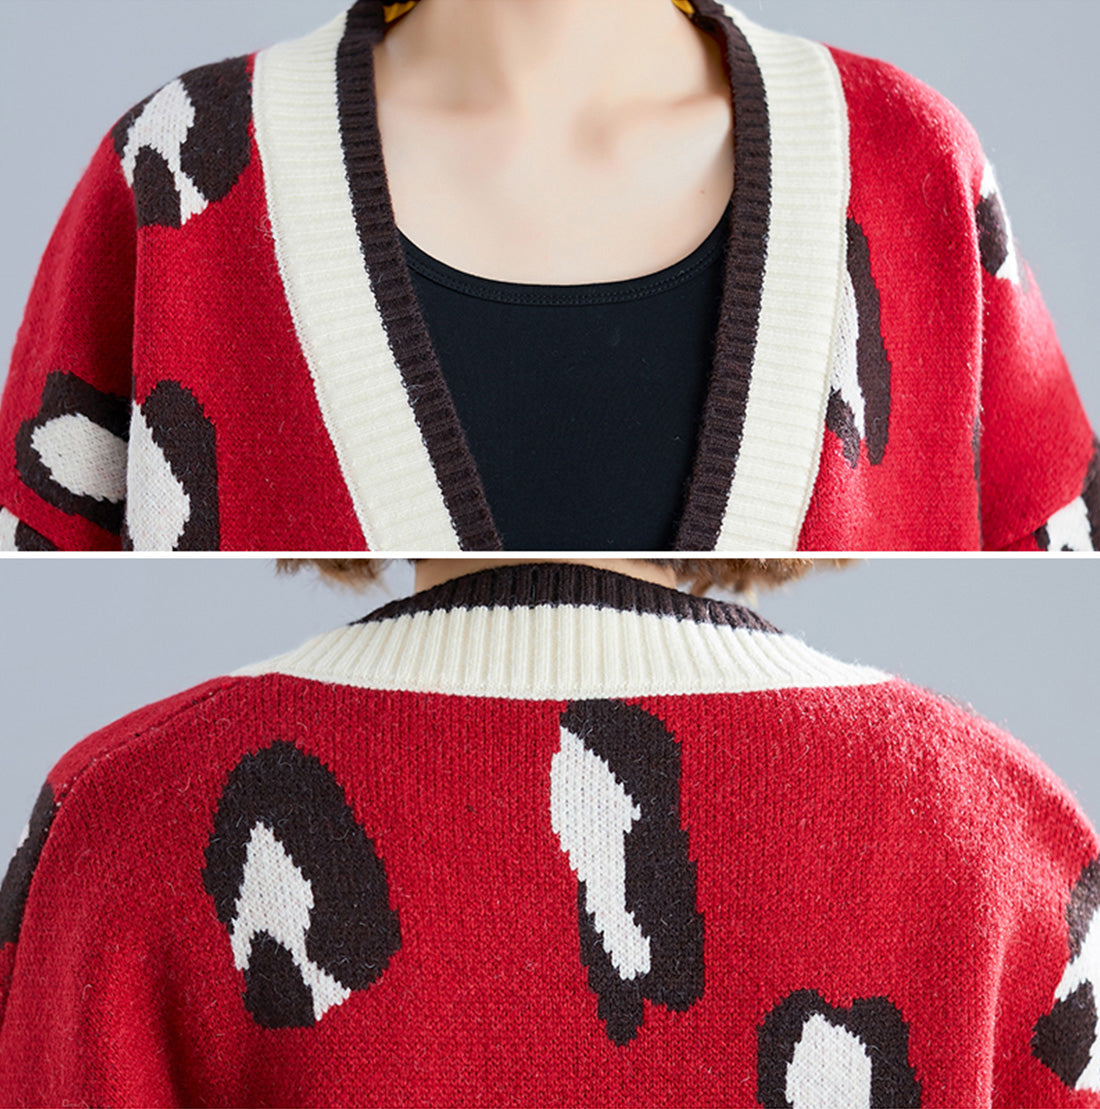 Crazy for You Leopard Cardigan Sweater Details 1